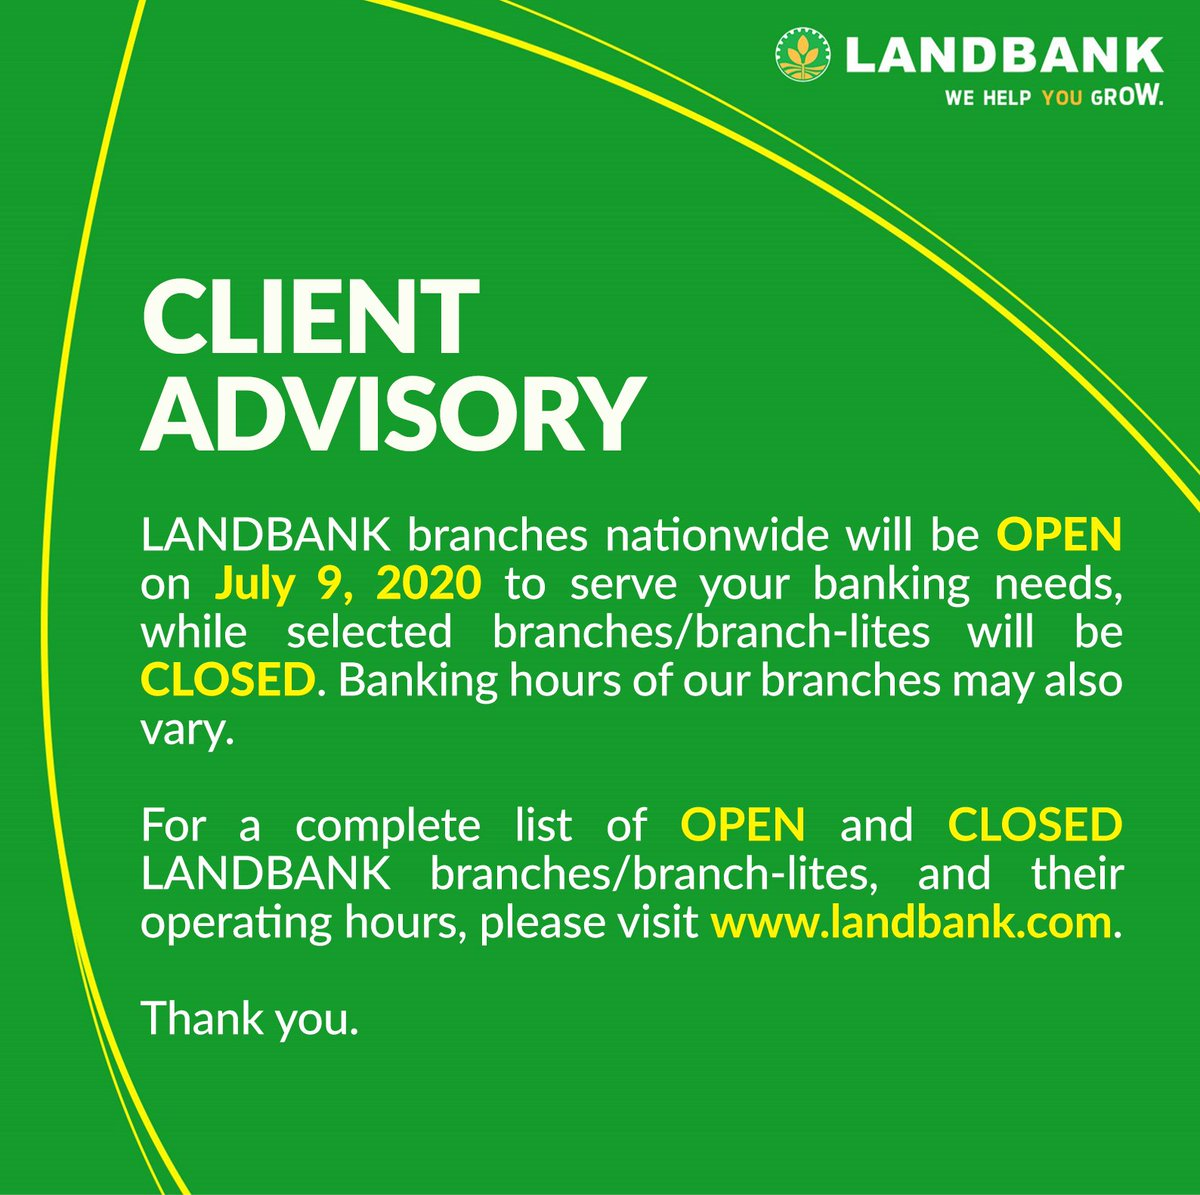 #LANDBANKClientAdvisory  To see the full list of OPEN branches, visit https://t.co/x1txK2A6Nt  To see the full list of CLOSED branches, visit https://t.co/ii4r9xMuWu https://t.co/QRzYXA128m